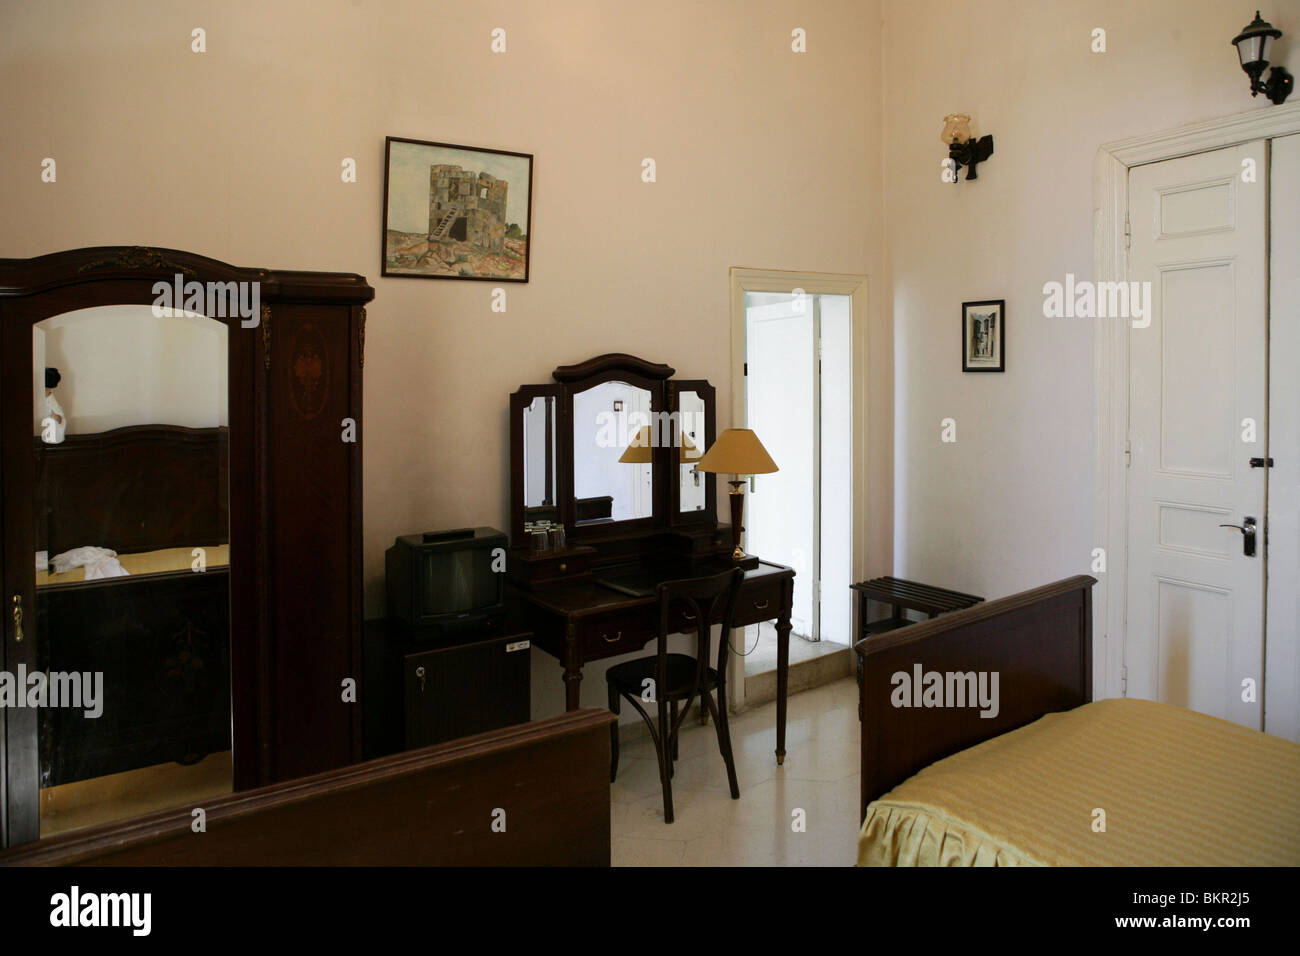 View of the bedroom,in which Agatha Christie stayed,  Baron Hotel, early 20th century, Aleppo, Syria. - Stock Image